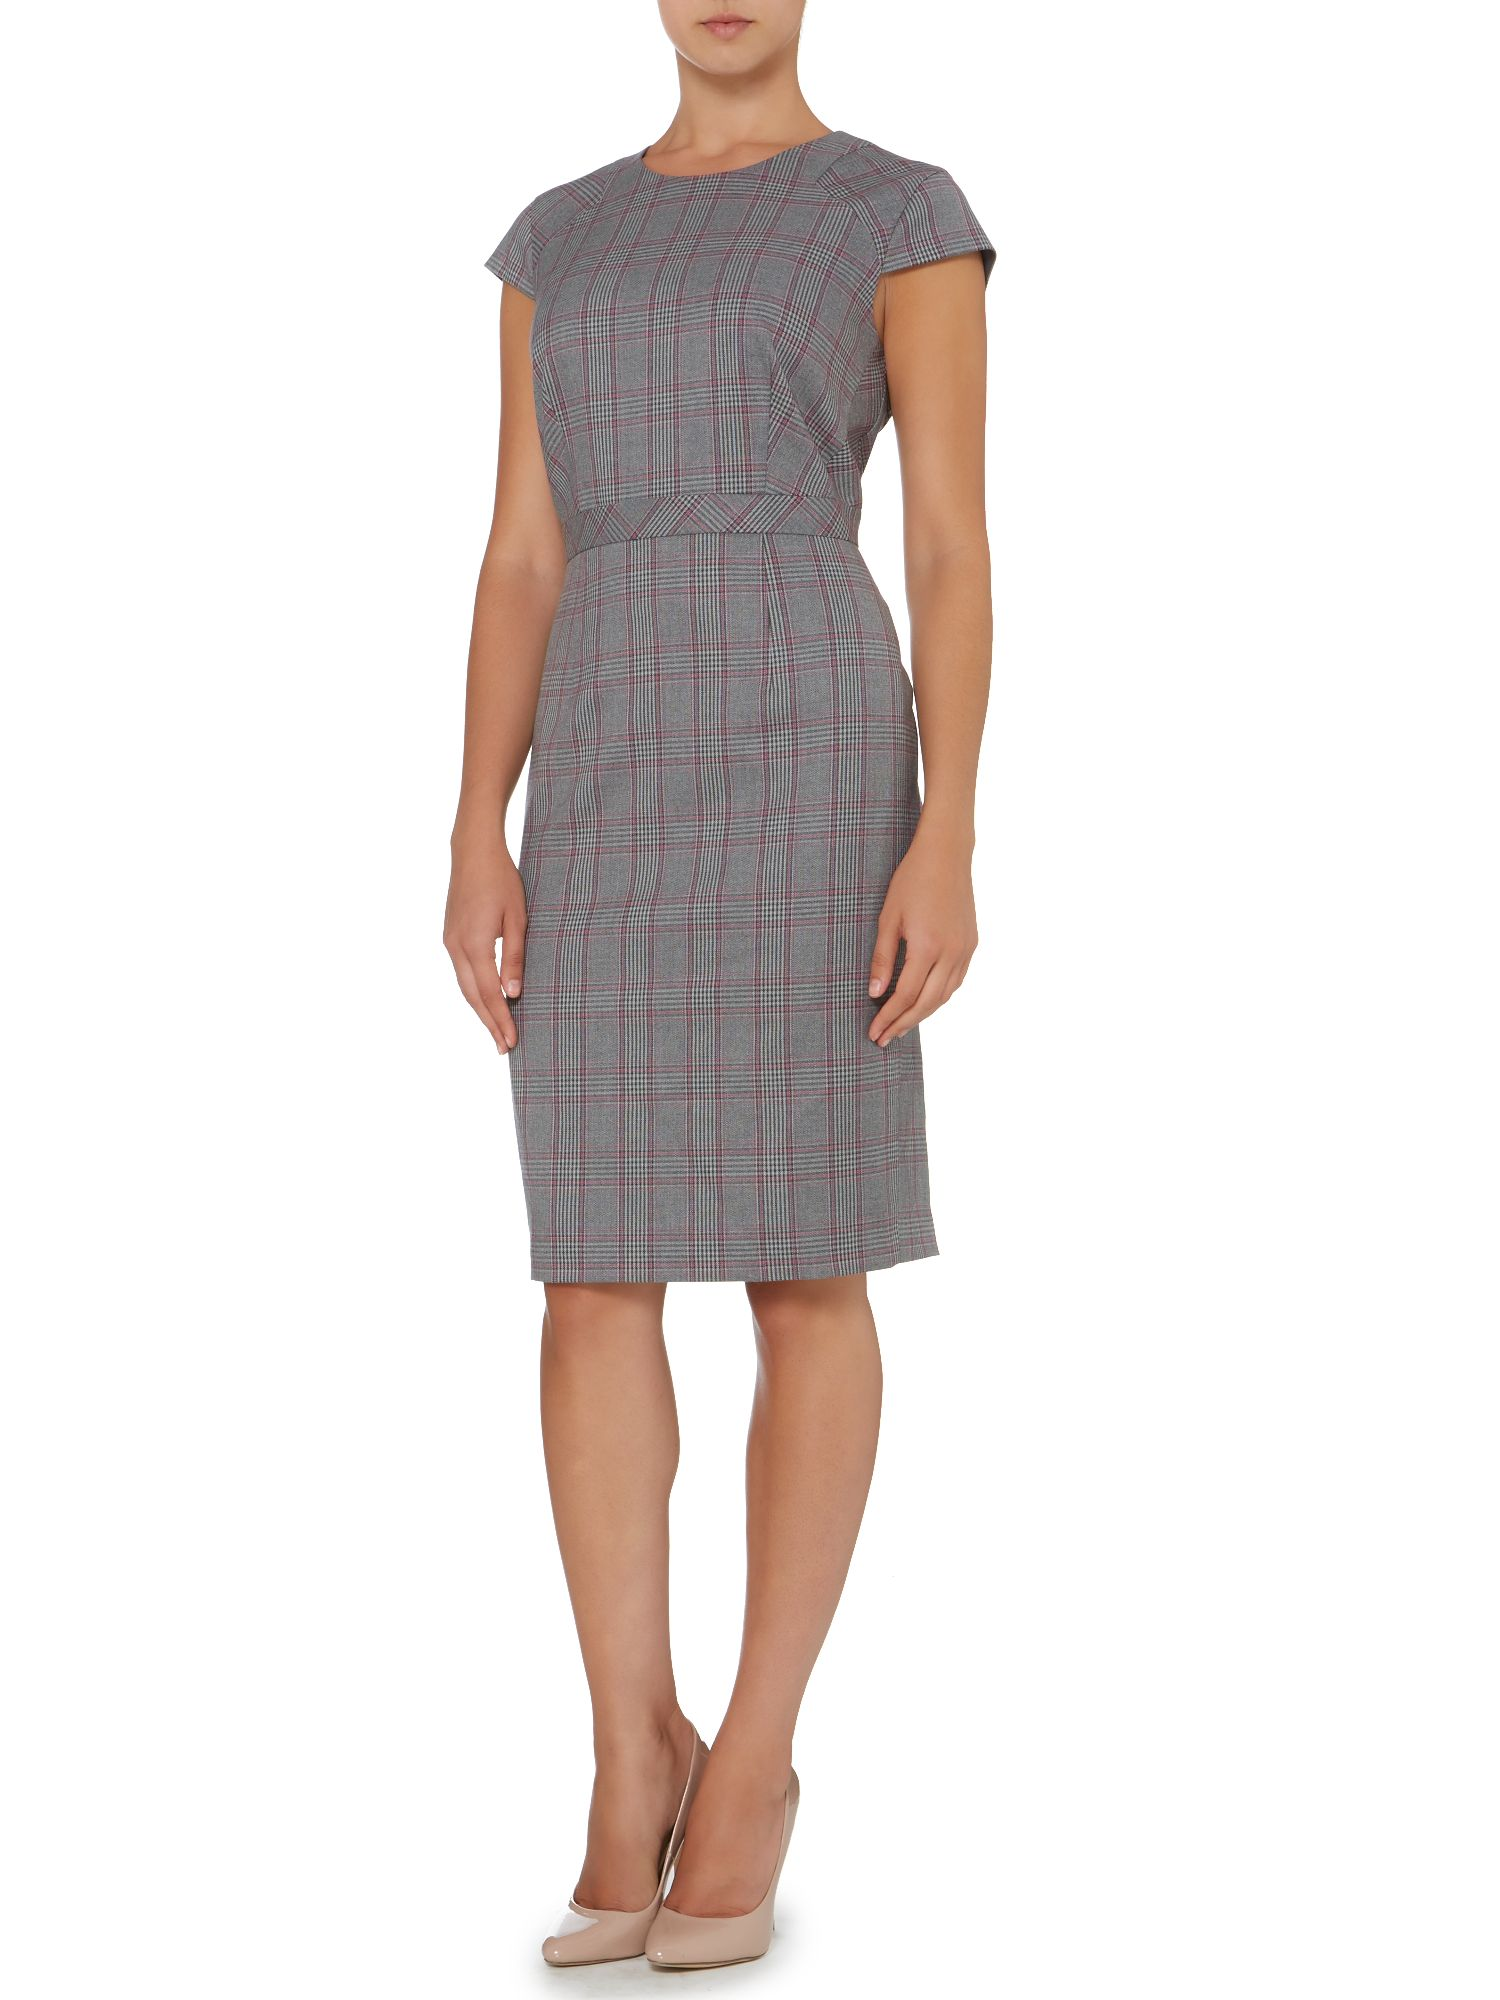 Prince of Wales check dress